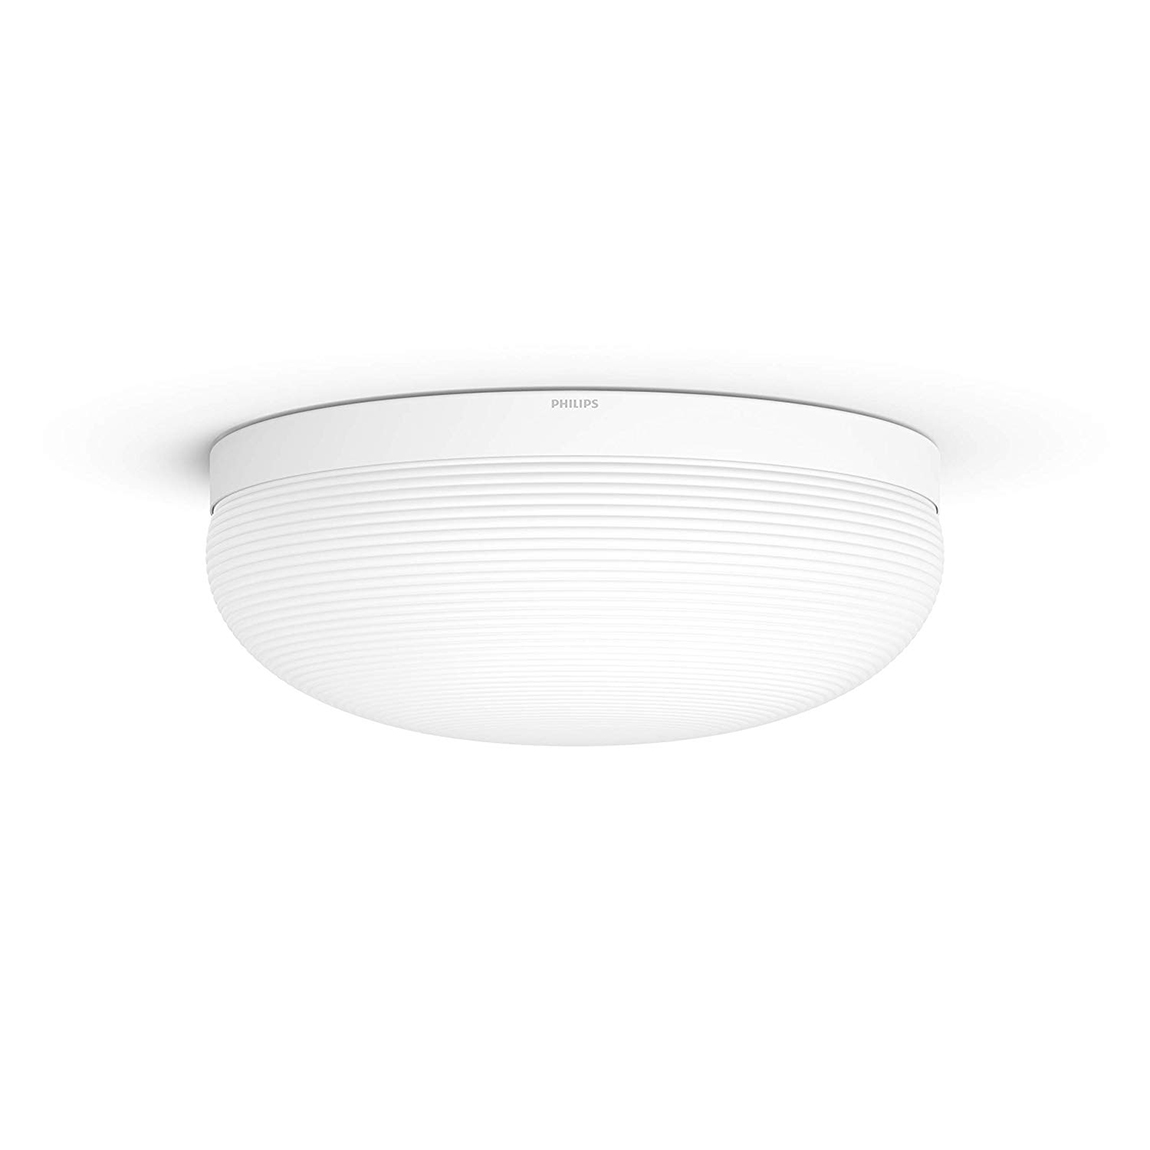 Philips Hue White & Color Ambiance Flourish Bluetooth - Deckenleuchte